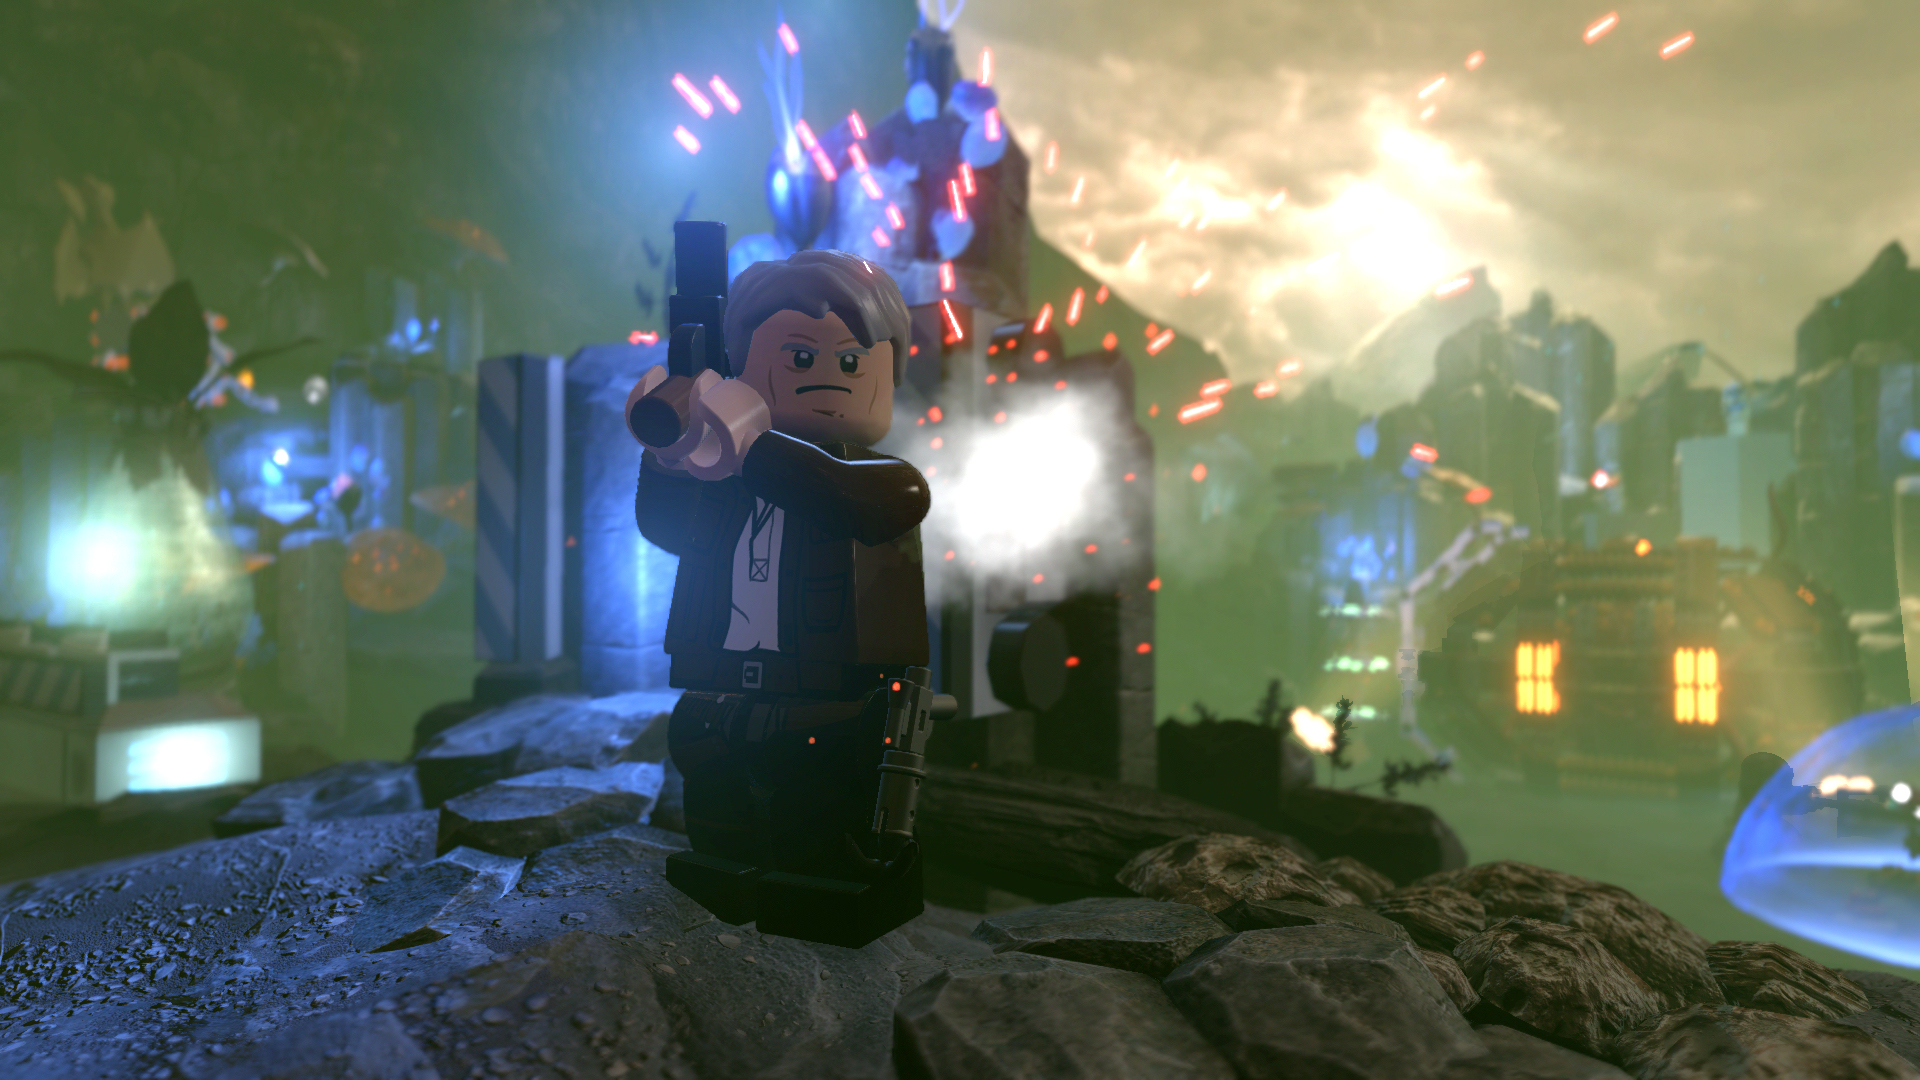 Lego Star Wars The Force Awakens Has Just Enough Comedy To Get You By The Washington Post